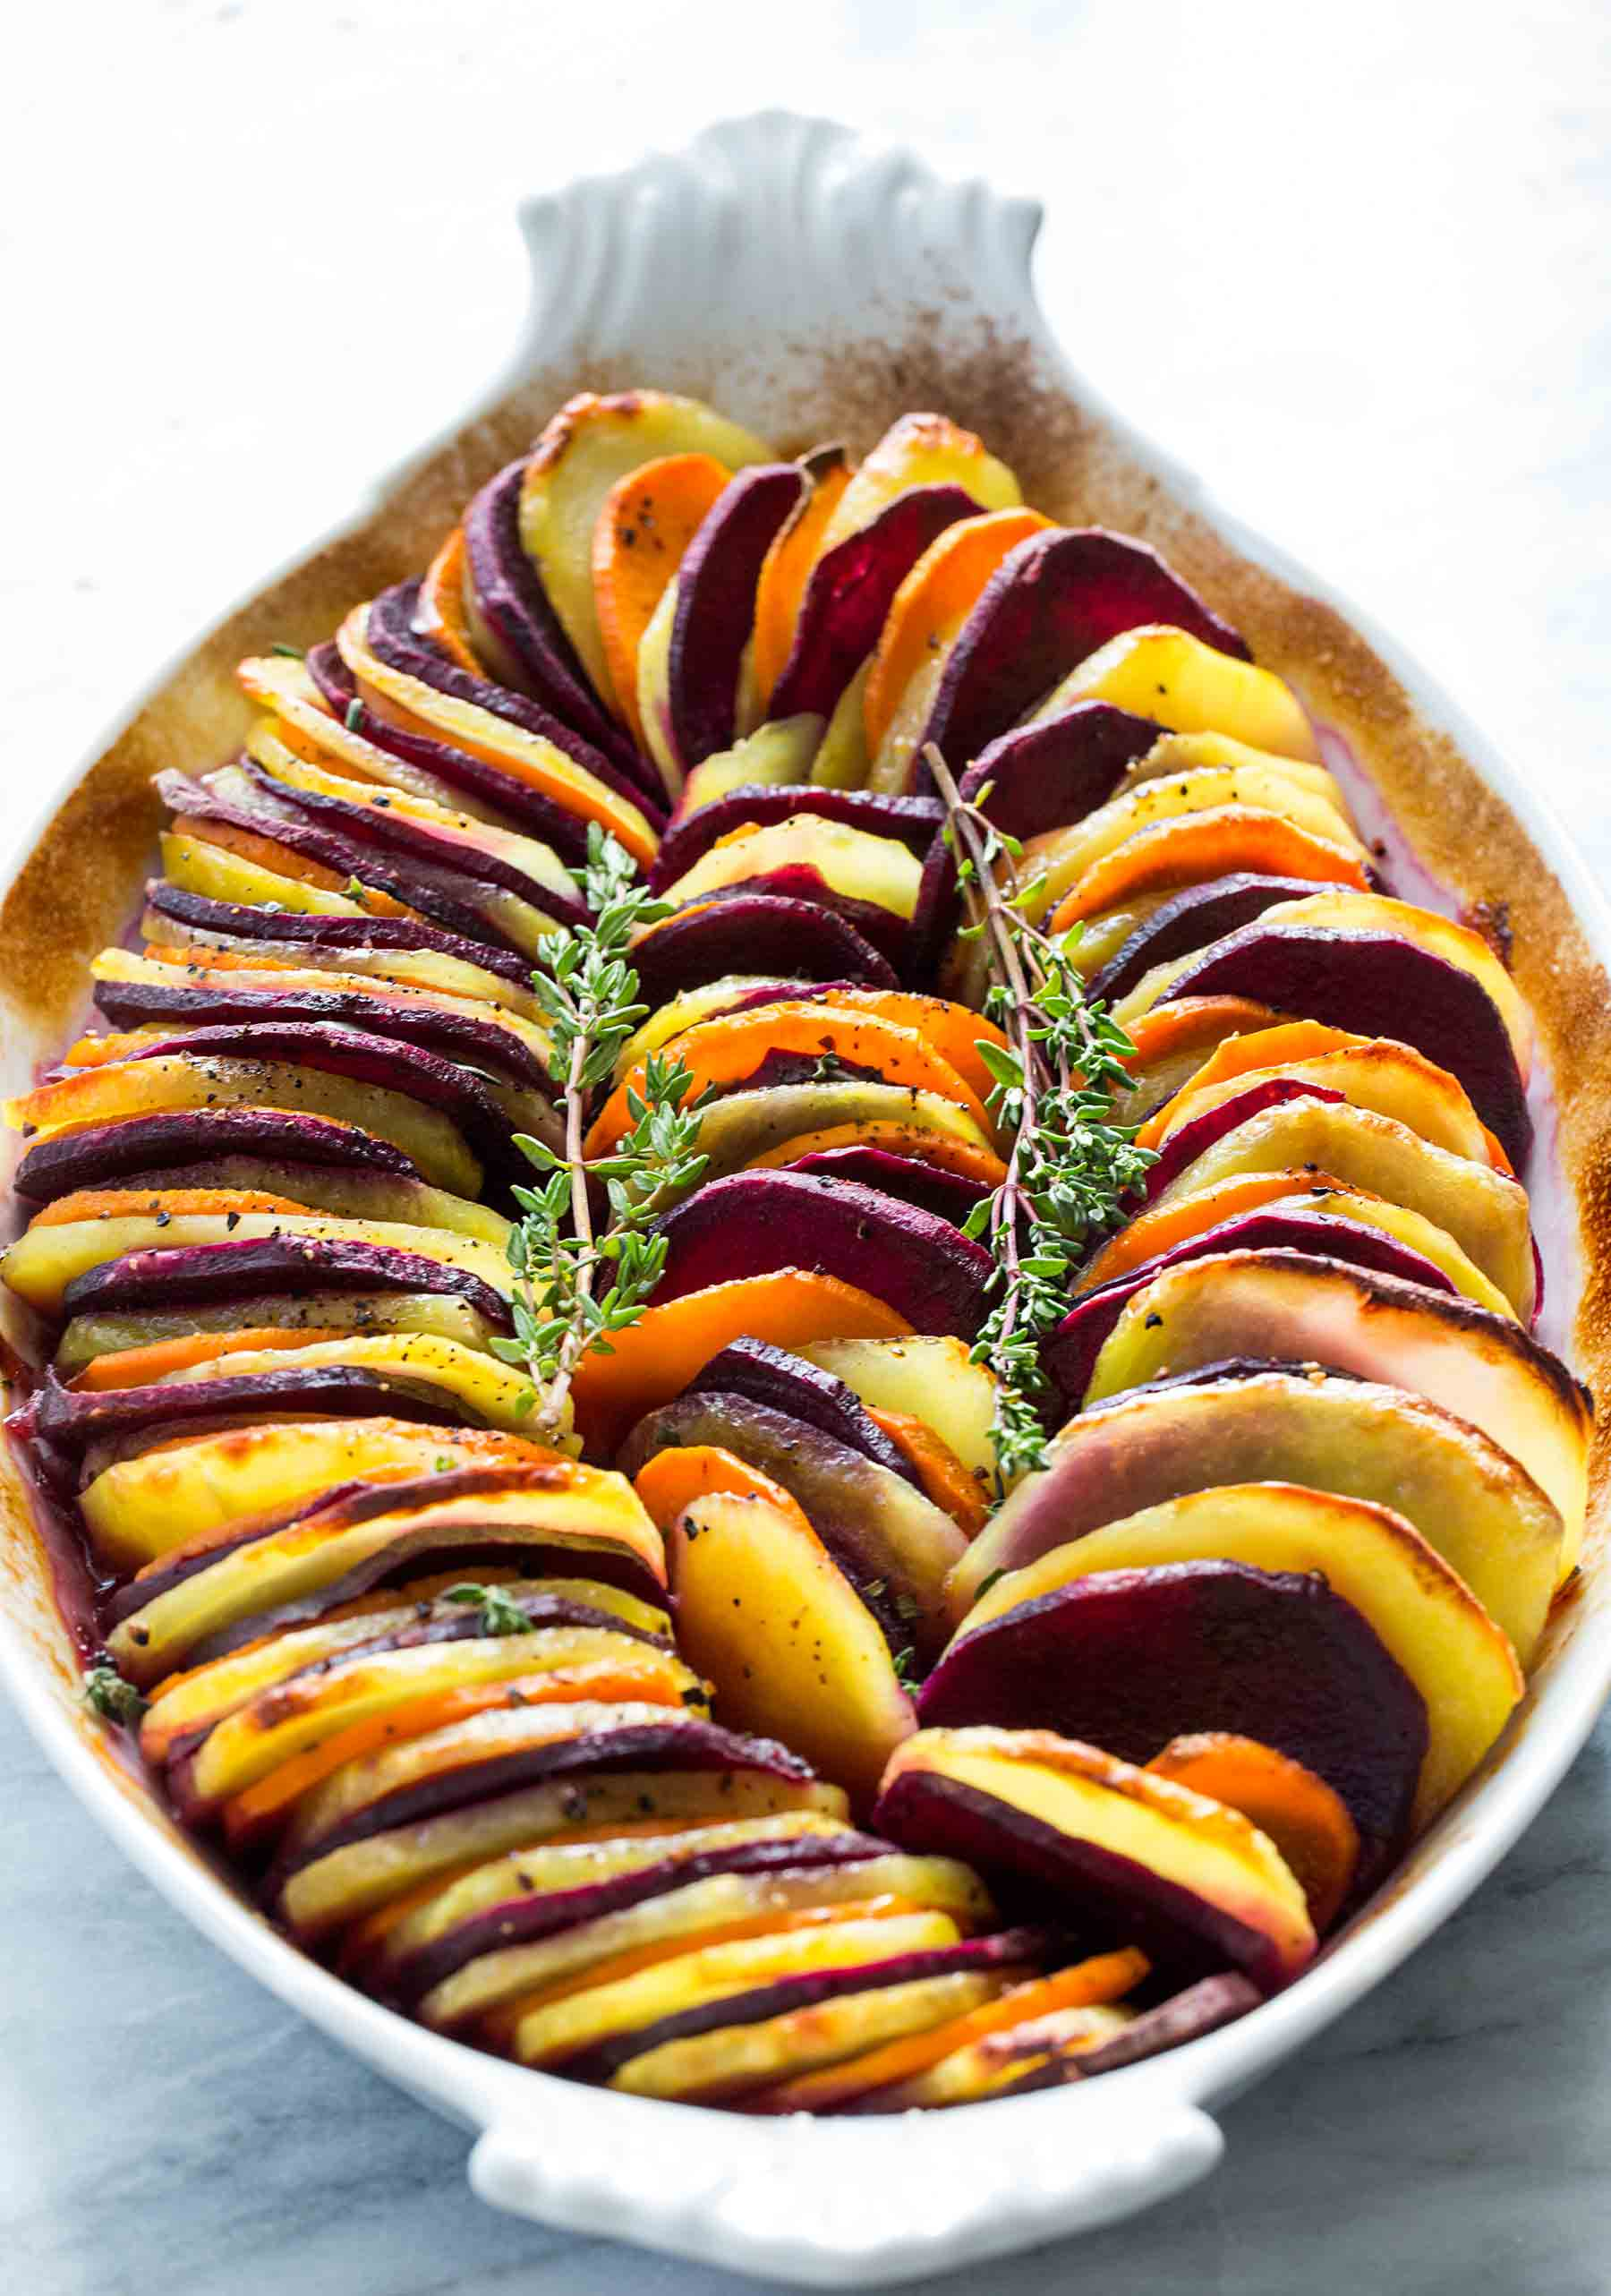 Sweet-potato-yukon-gold-bake-vertical-a-1800